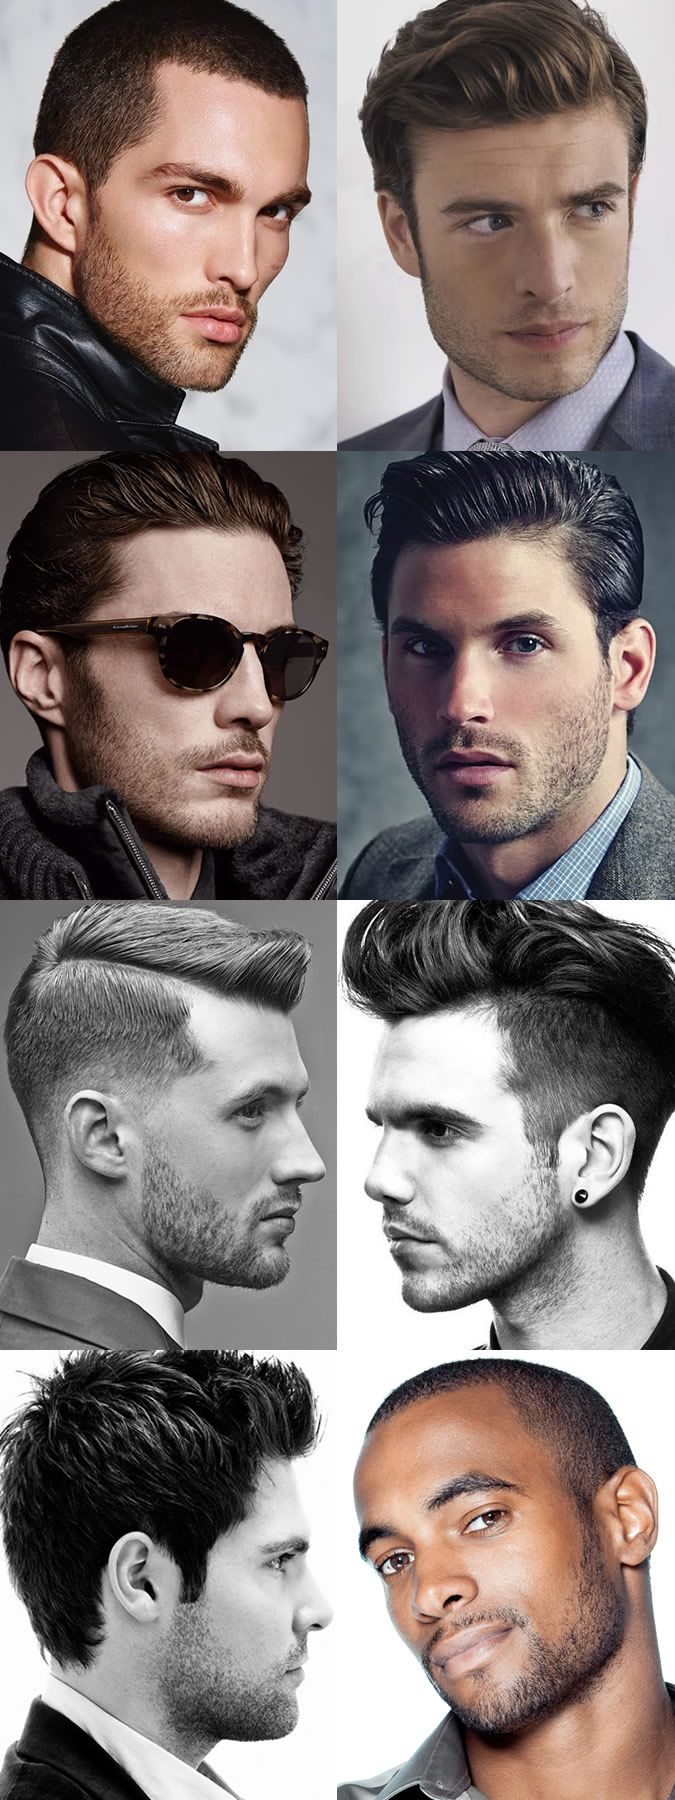 Swell 1000 Images About Men39S Hair 39N39 Beard Styles On Pinterest Short Hairstyles Gunalazisus